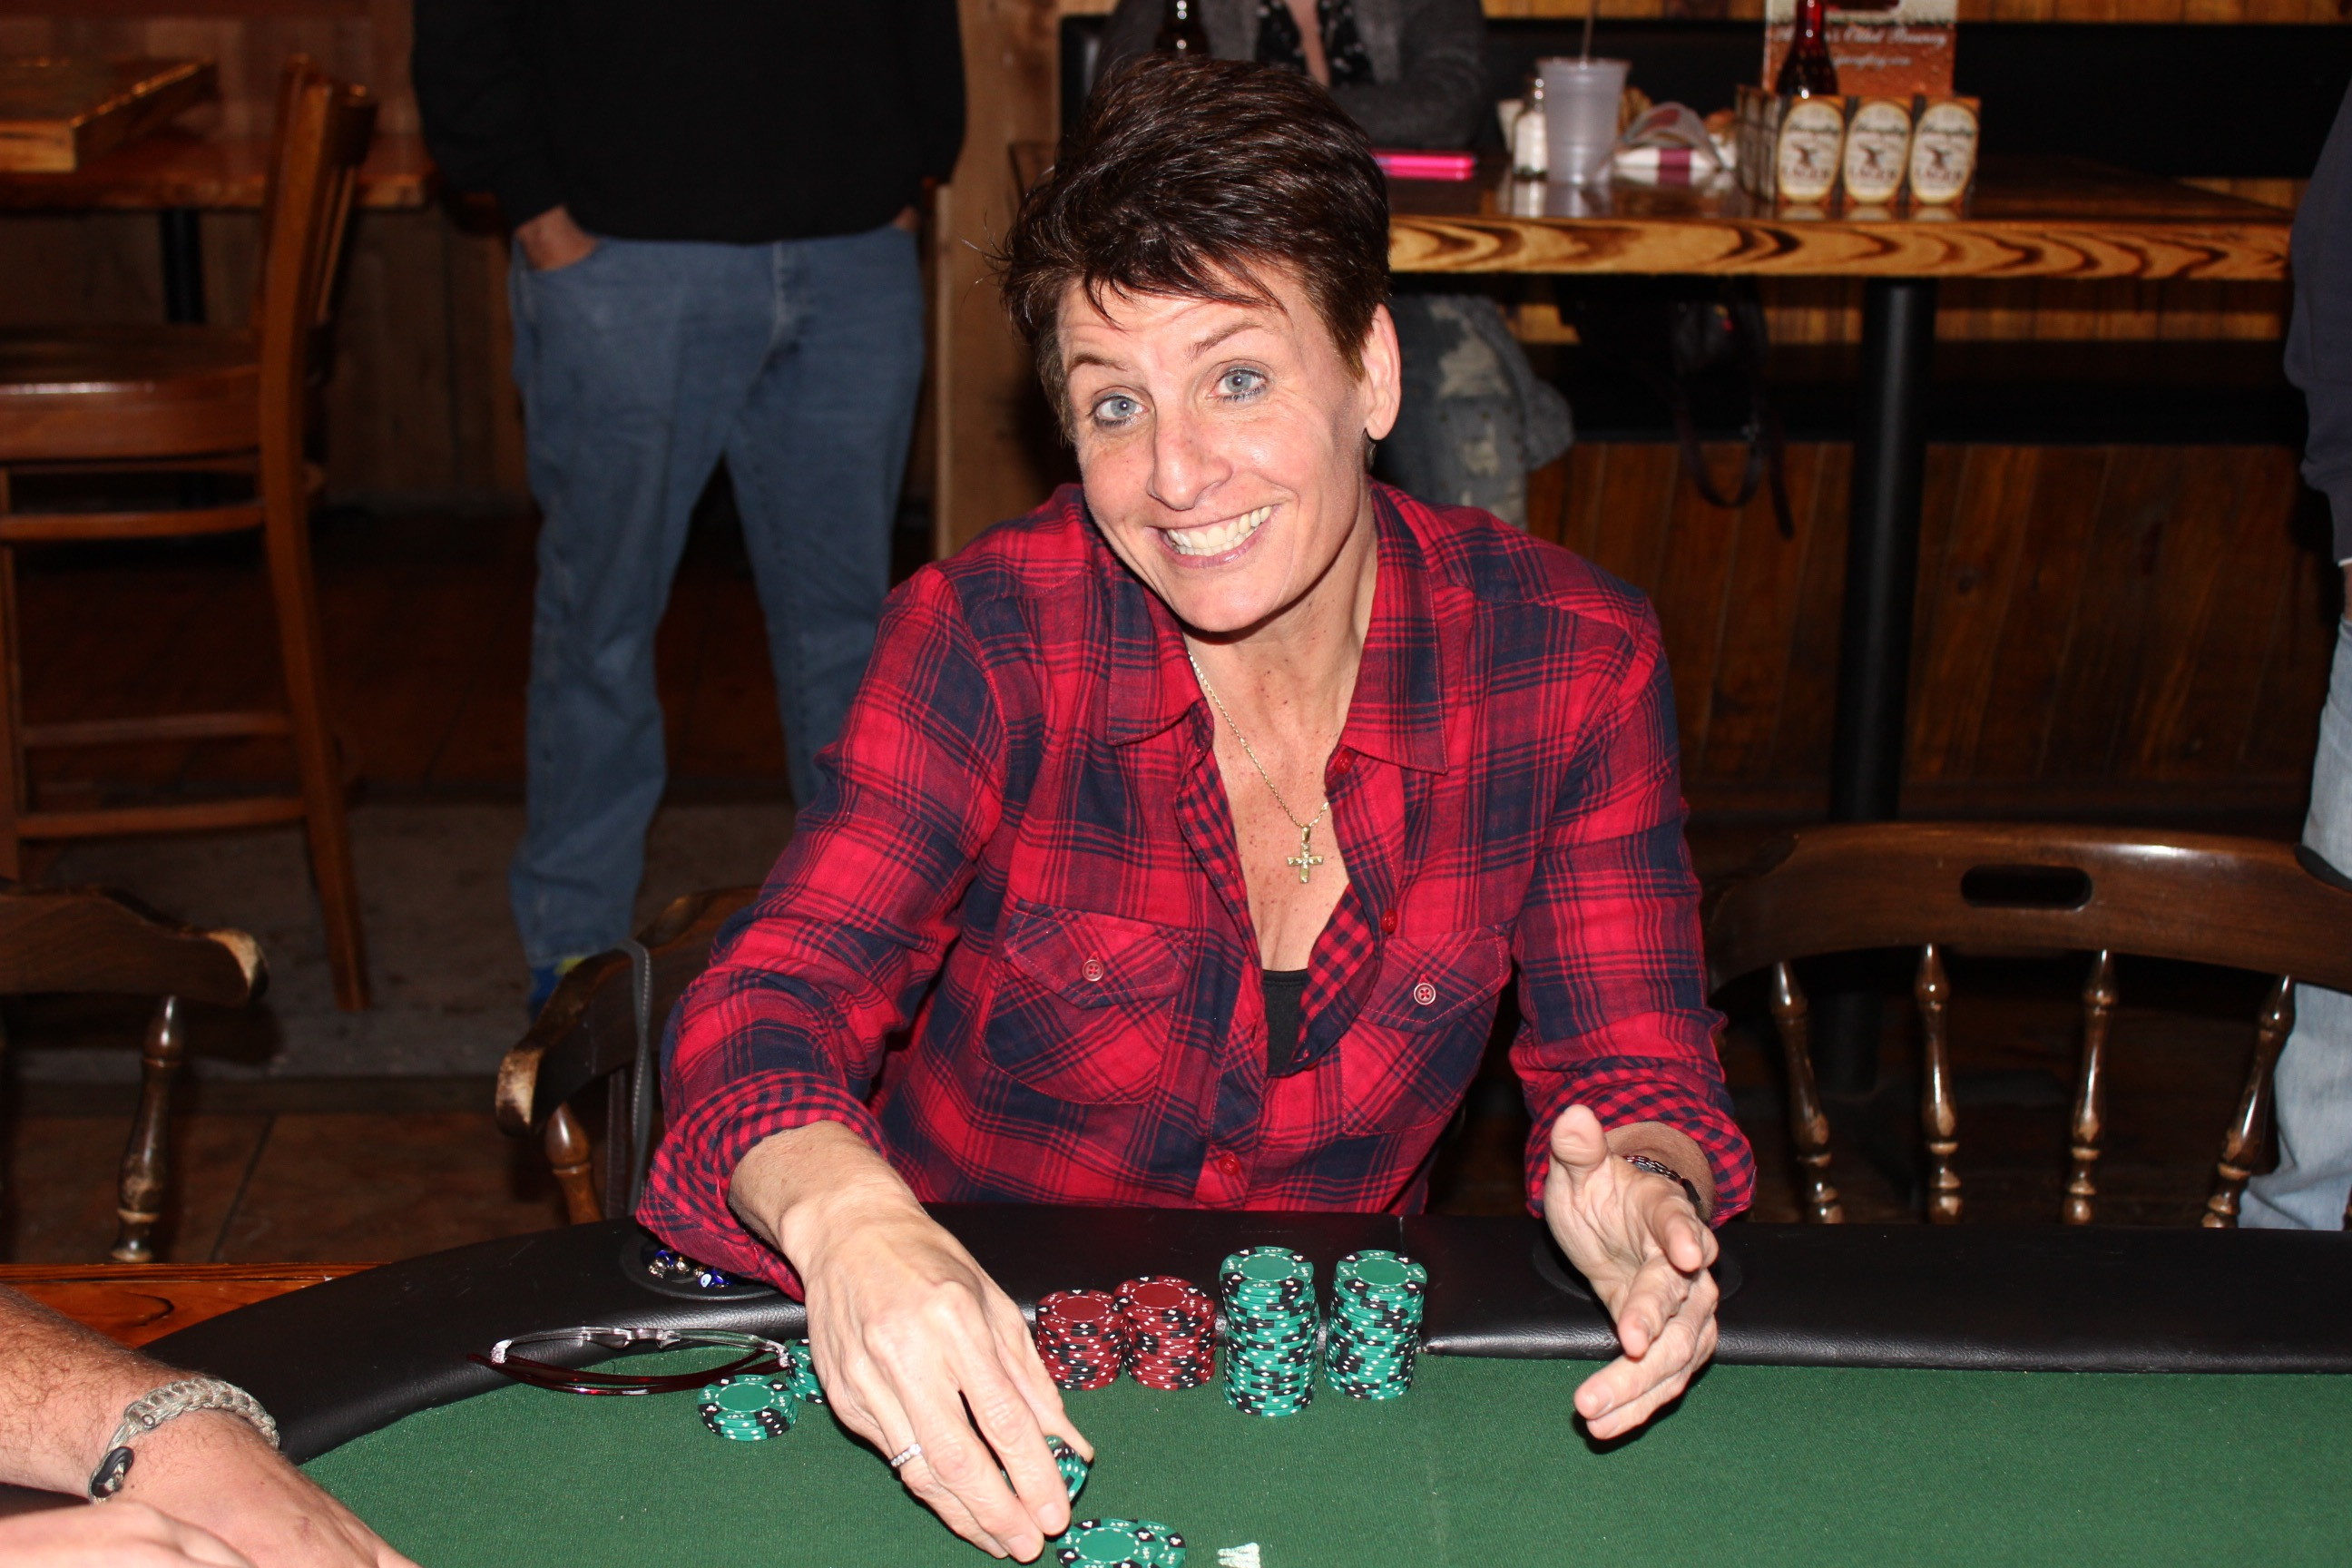 River street poker no credit check no direct deposit loans